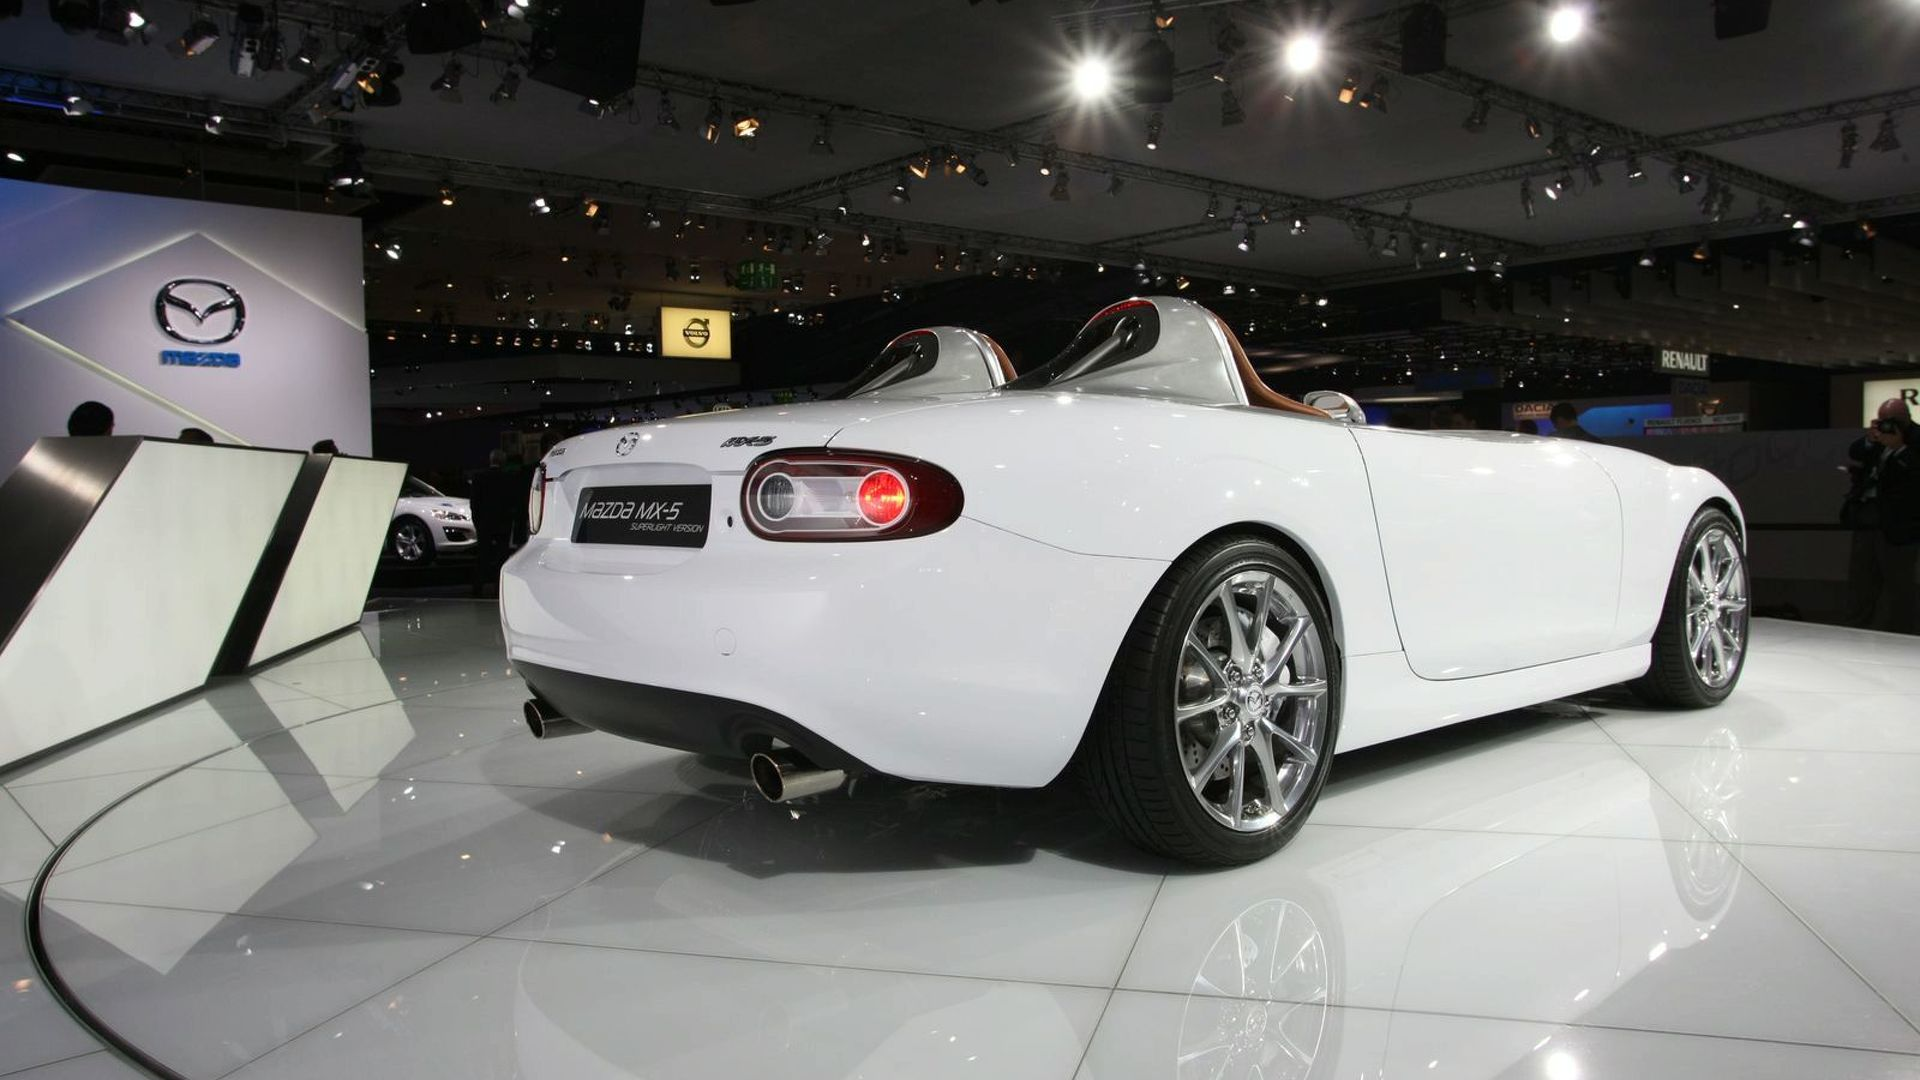 https://icdn-1.motor1.com/images/mgl/3QwoX/s1/2009-182447-mazda-mx-5-superlight-concept-live-at-2009-frankfurt-motor-show1.jpg